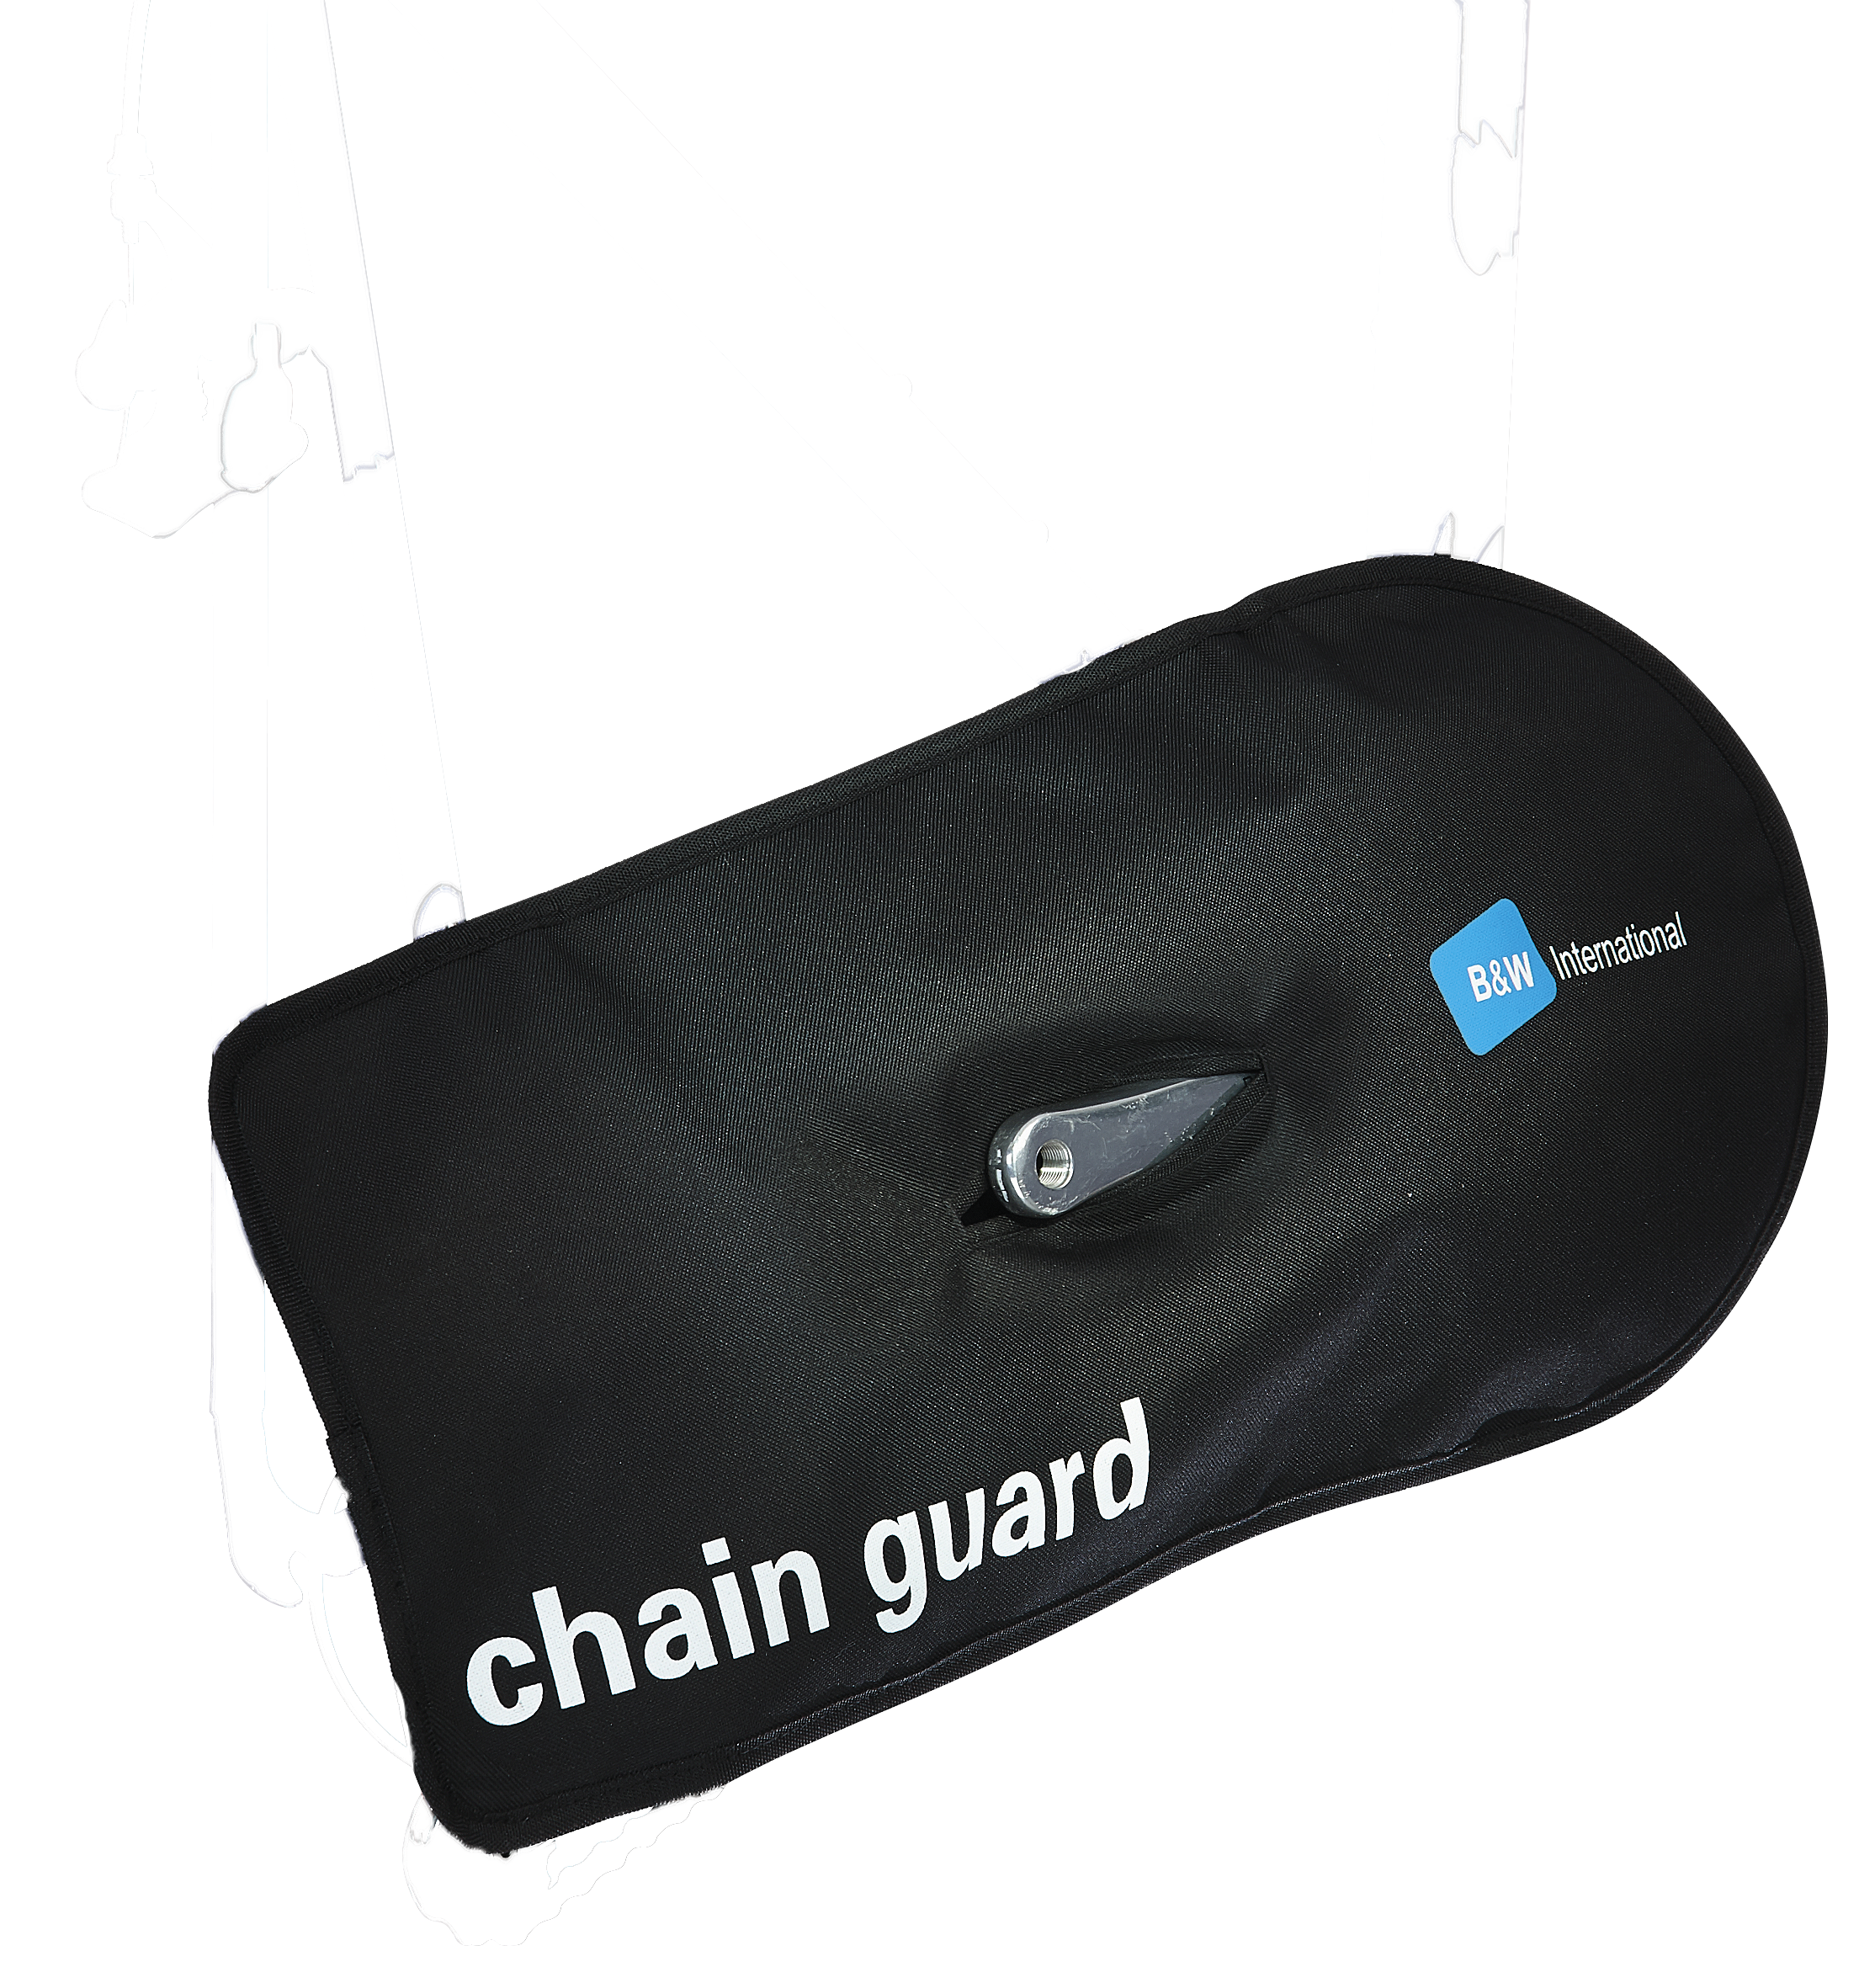 B&W chain.guard